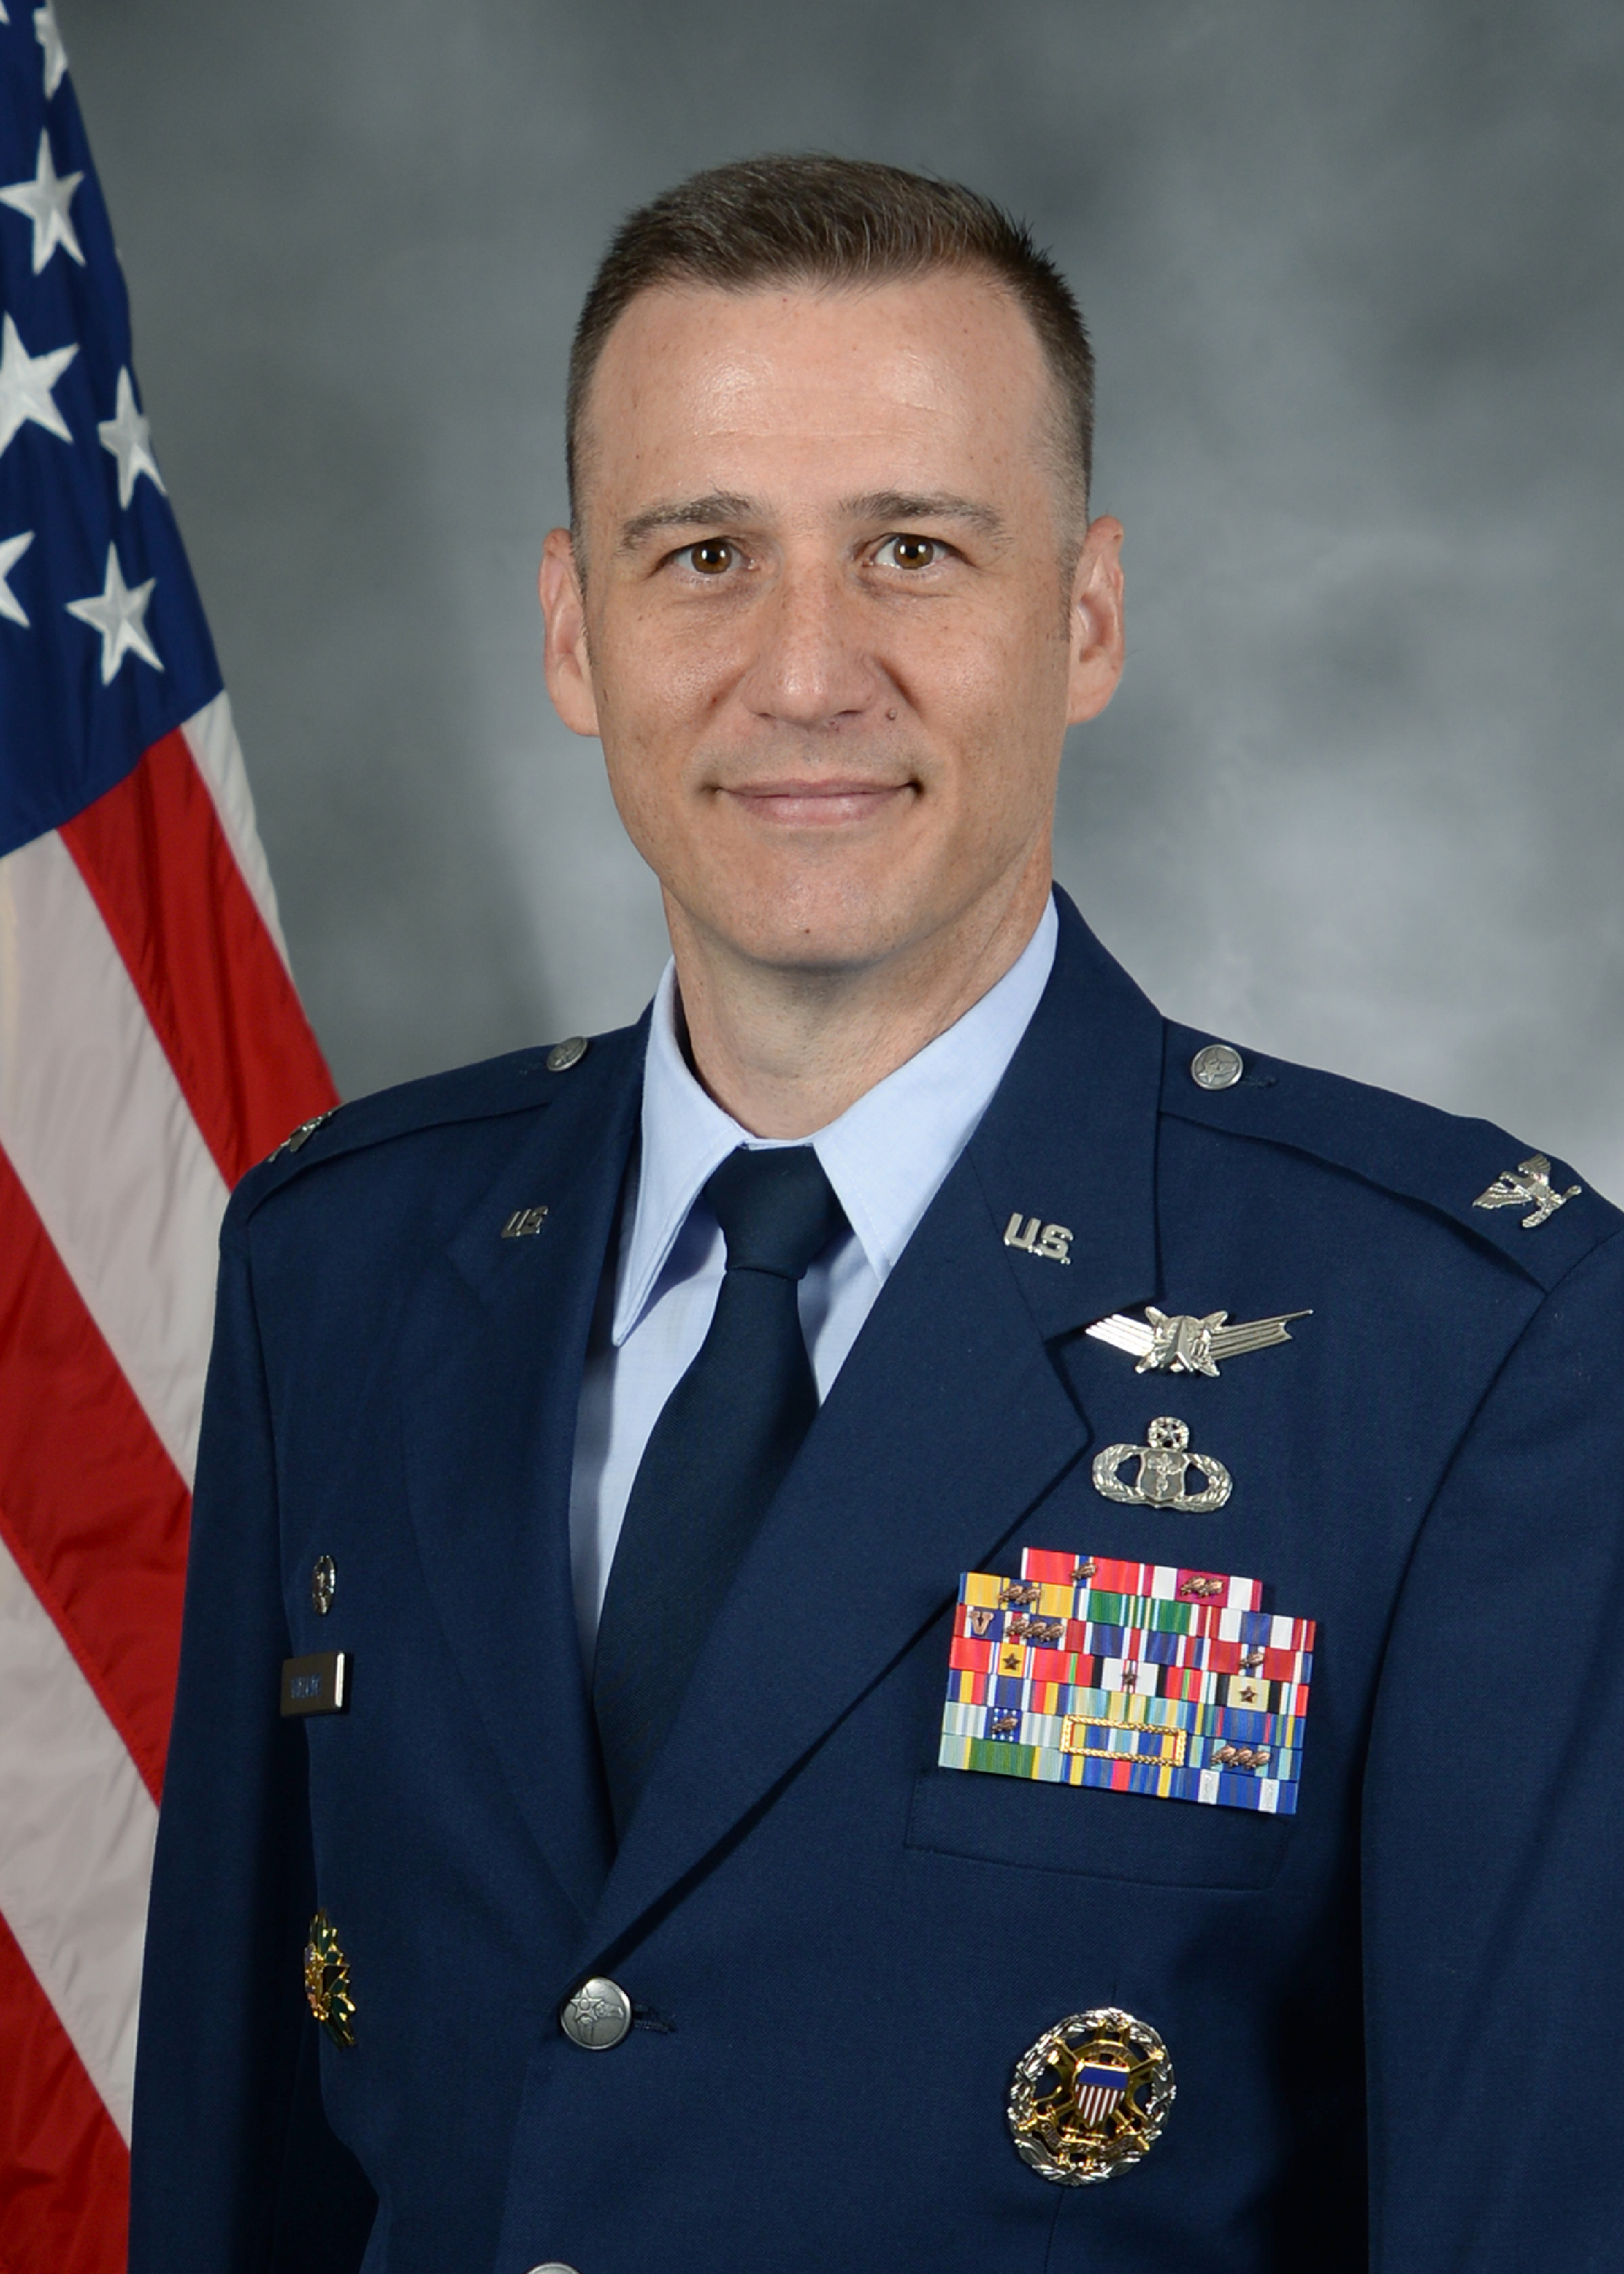 Col. Williams